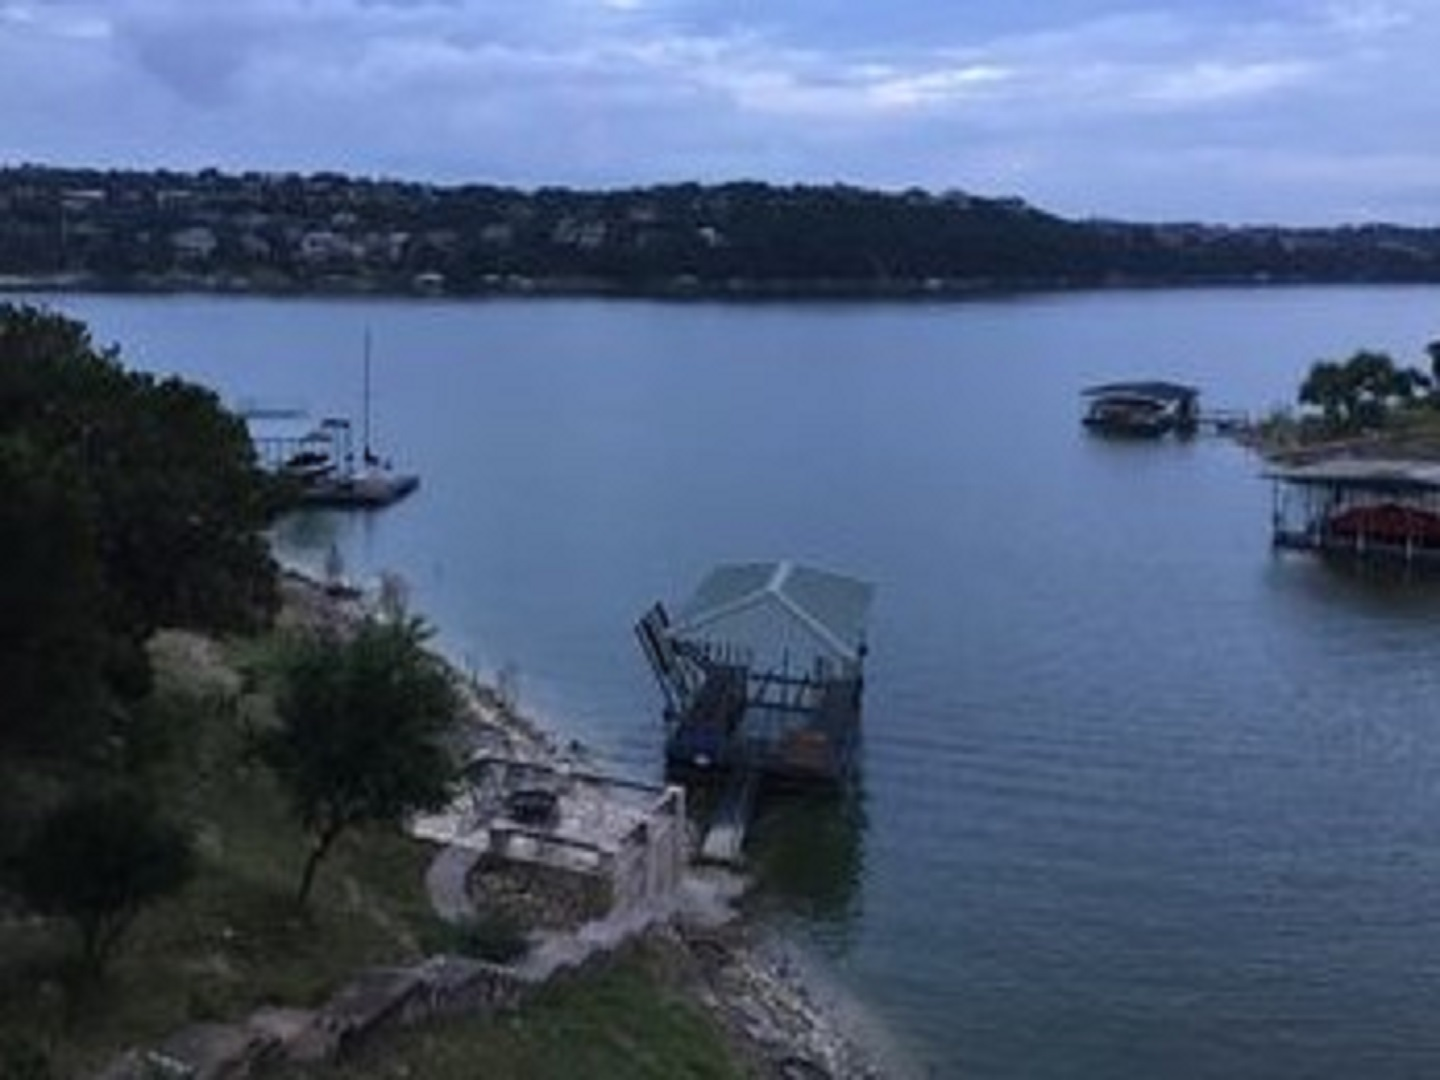 A small boat in a large body of water at Lake Travis Cozy Cove Vacation Cottage Rentals.